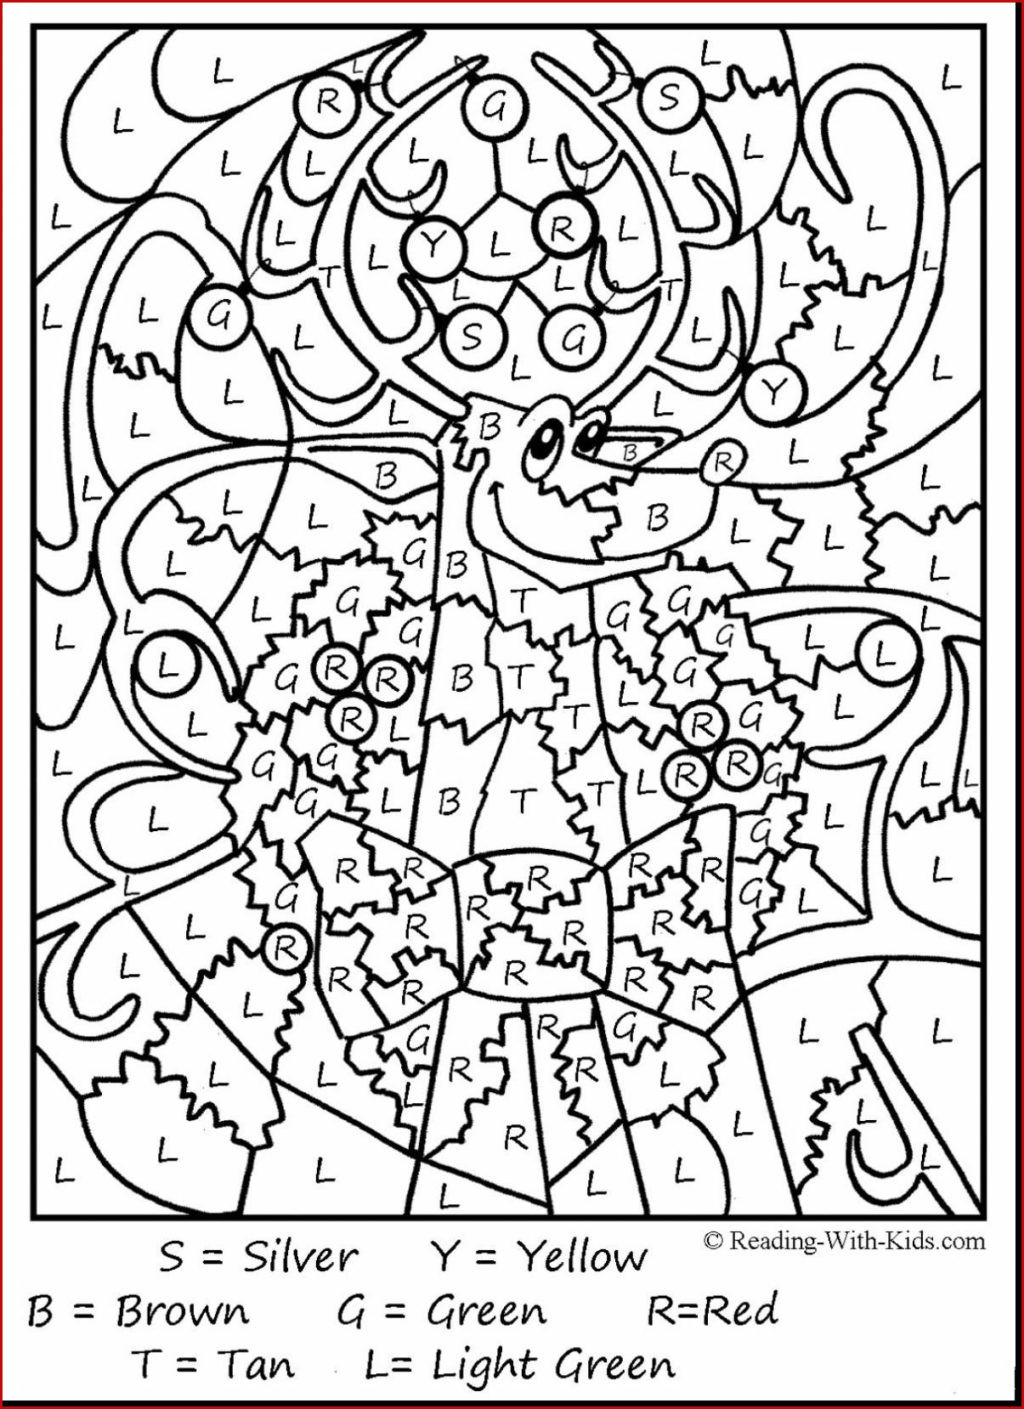 Coloring Pages for 3rd Graders Worksheet Amazing Matholoring Pages 3rd Grade Ideas